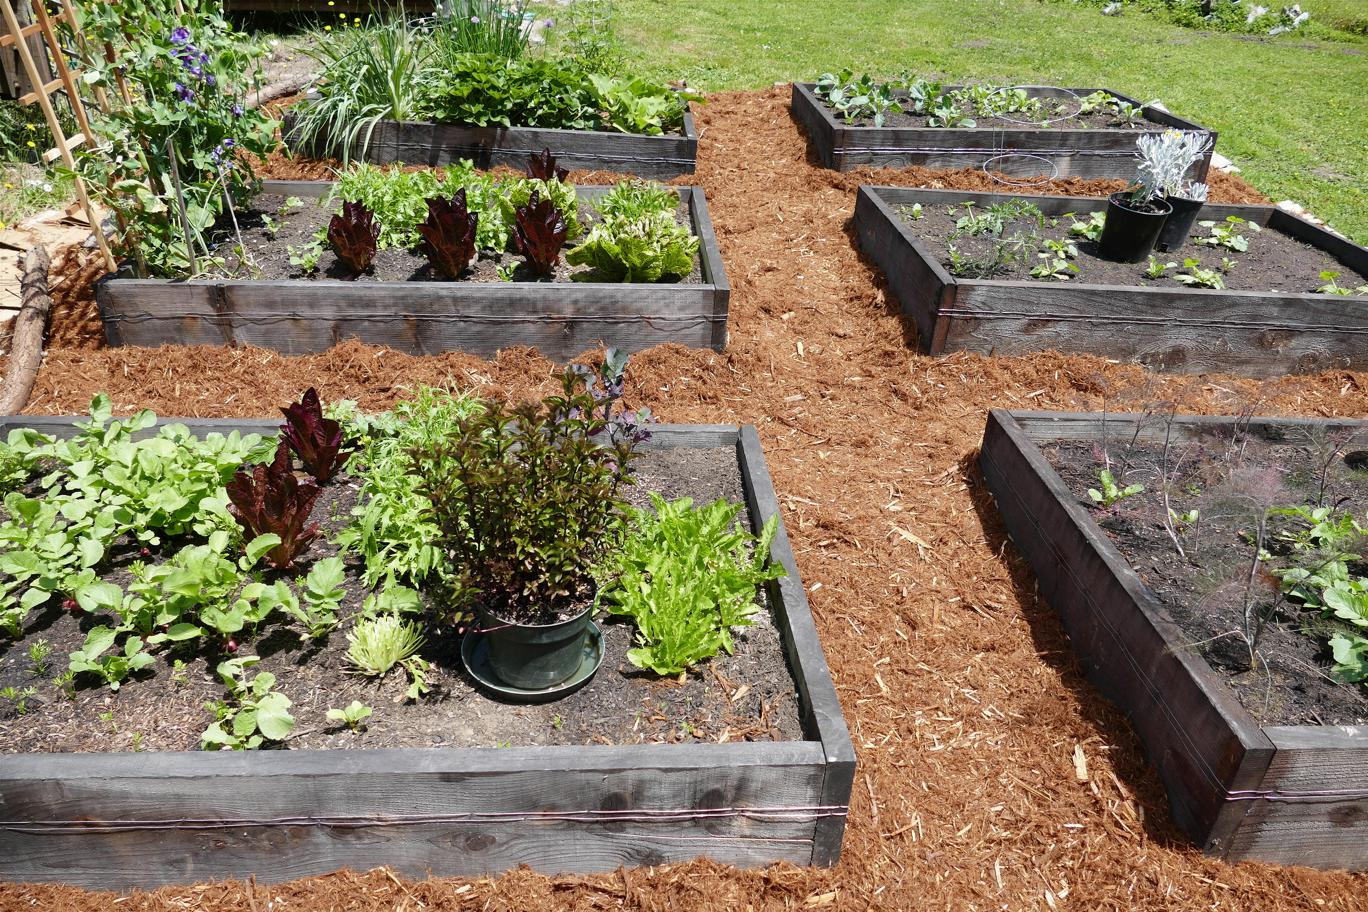 Some our our raised beds